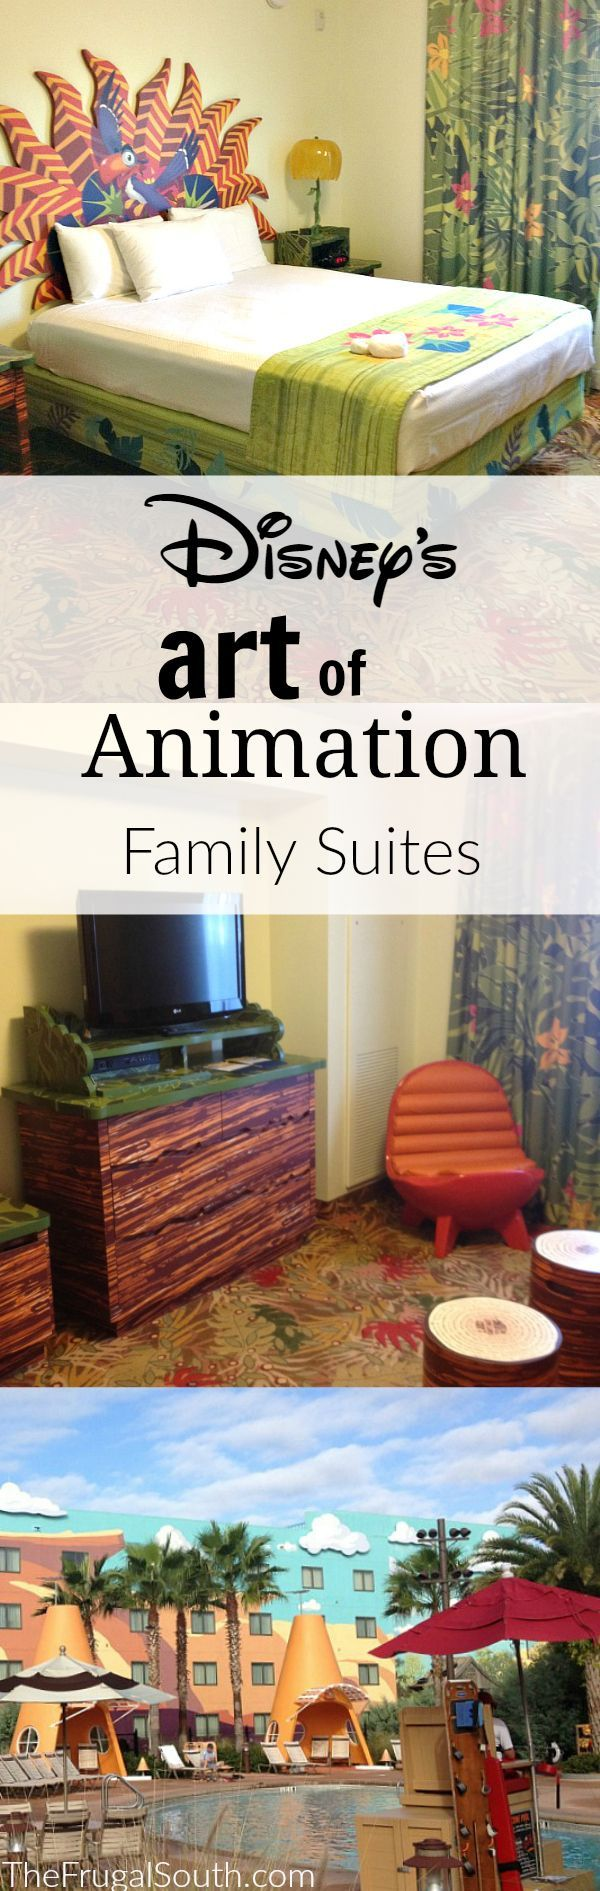 Need more space on your Disney World vacation? Here's a review of the Family Suites at Disney's Art of Animation Resort, which sleep up to six. Perfect for families with young kids who want privacy and more space!